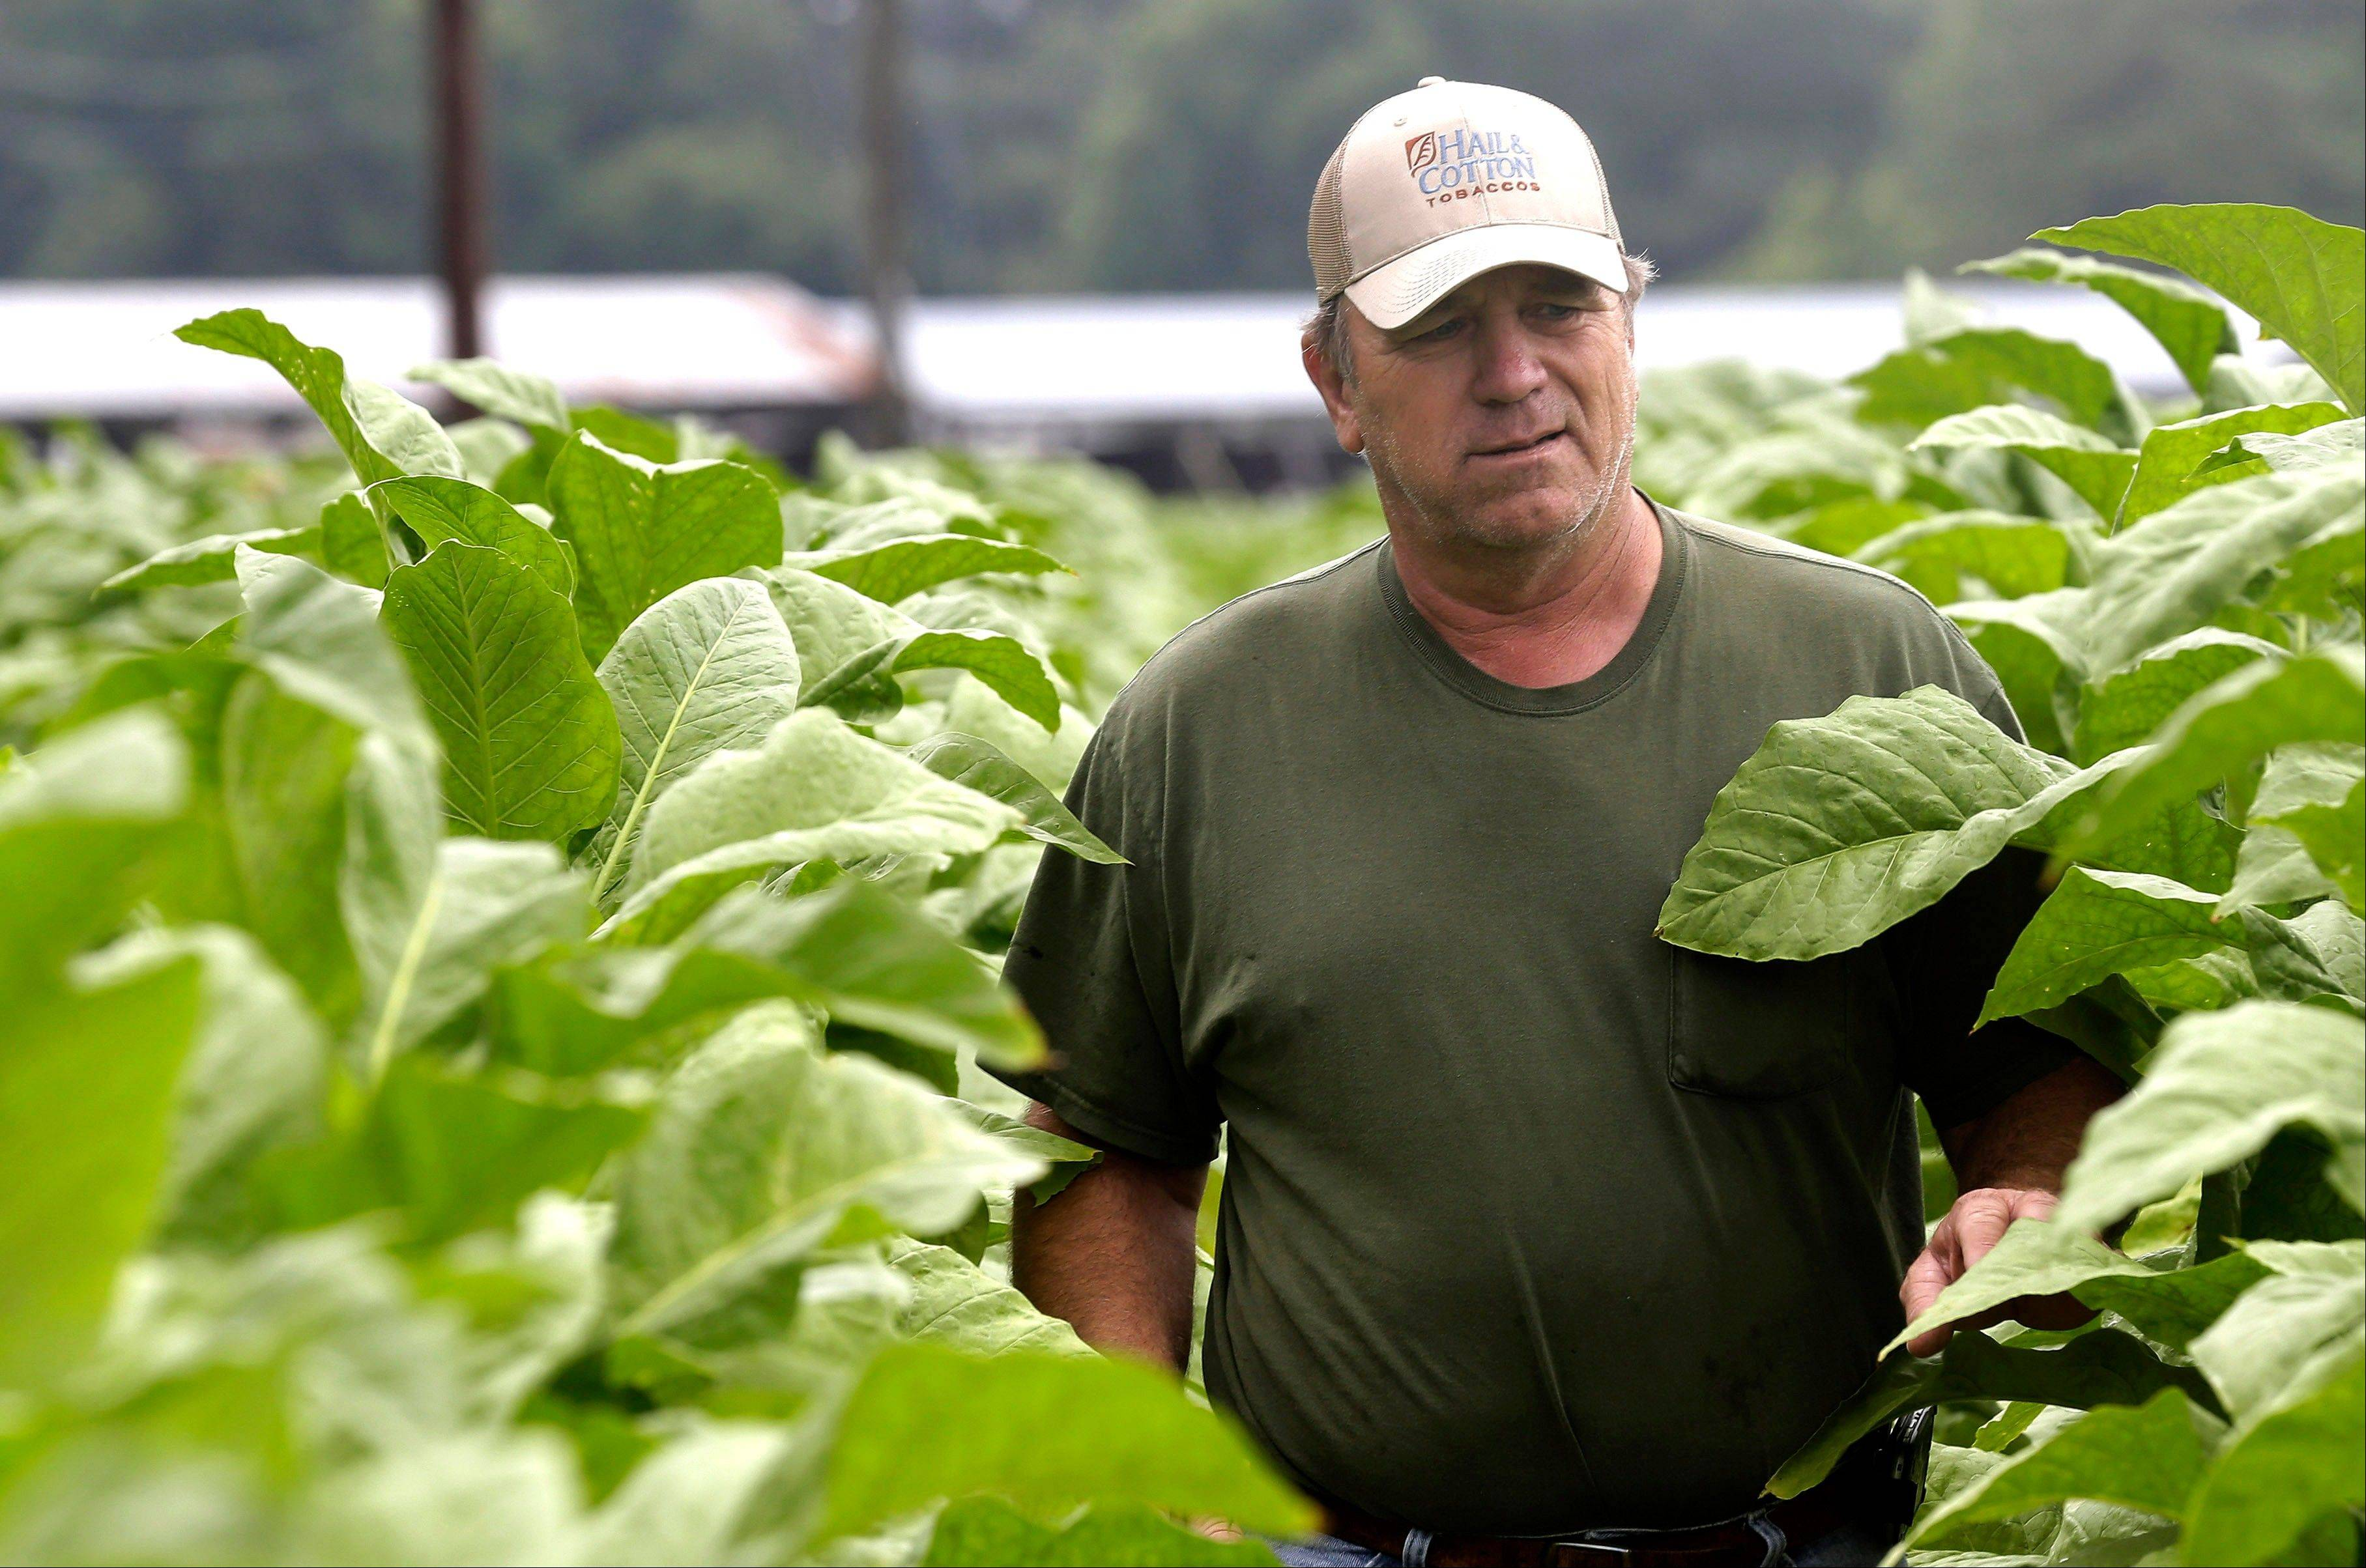 Harnett County farmer Kent Revels inspects one of his tobacco fields Friday in Fuquay Varina, N.C. Heavy rain across the nation's tobacco-growing territories has soaked the dry weather-loving plants to the point that many can't be saved.